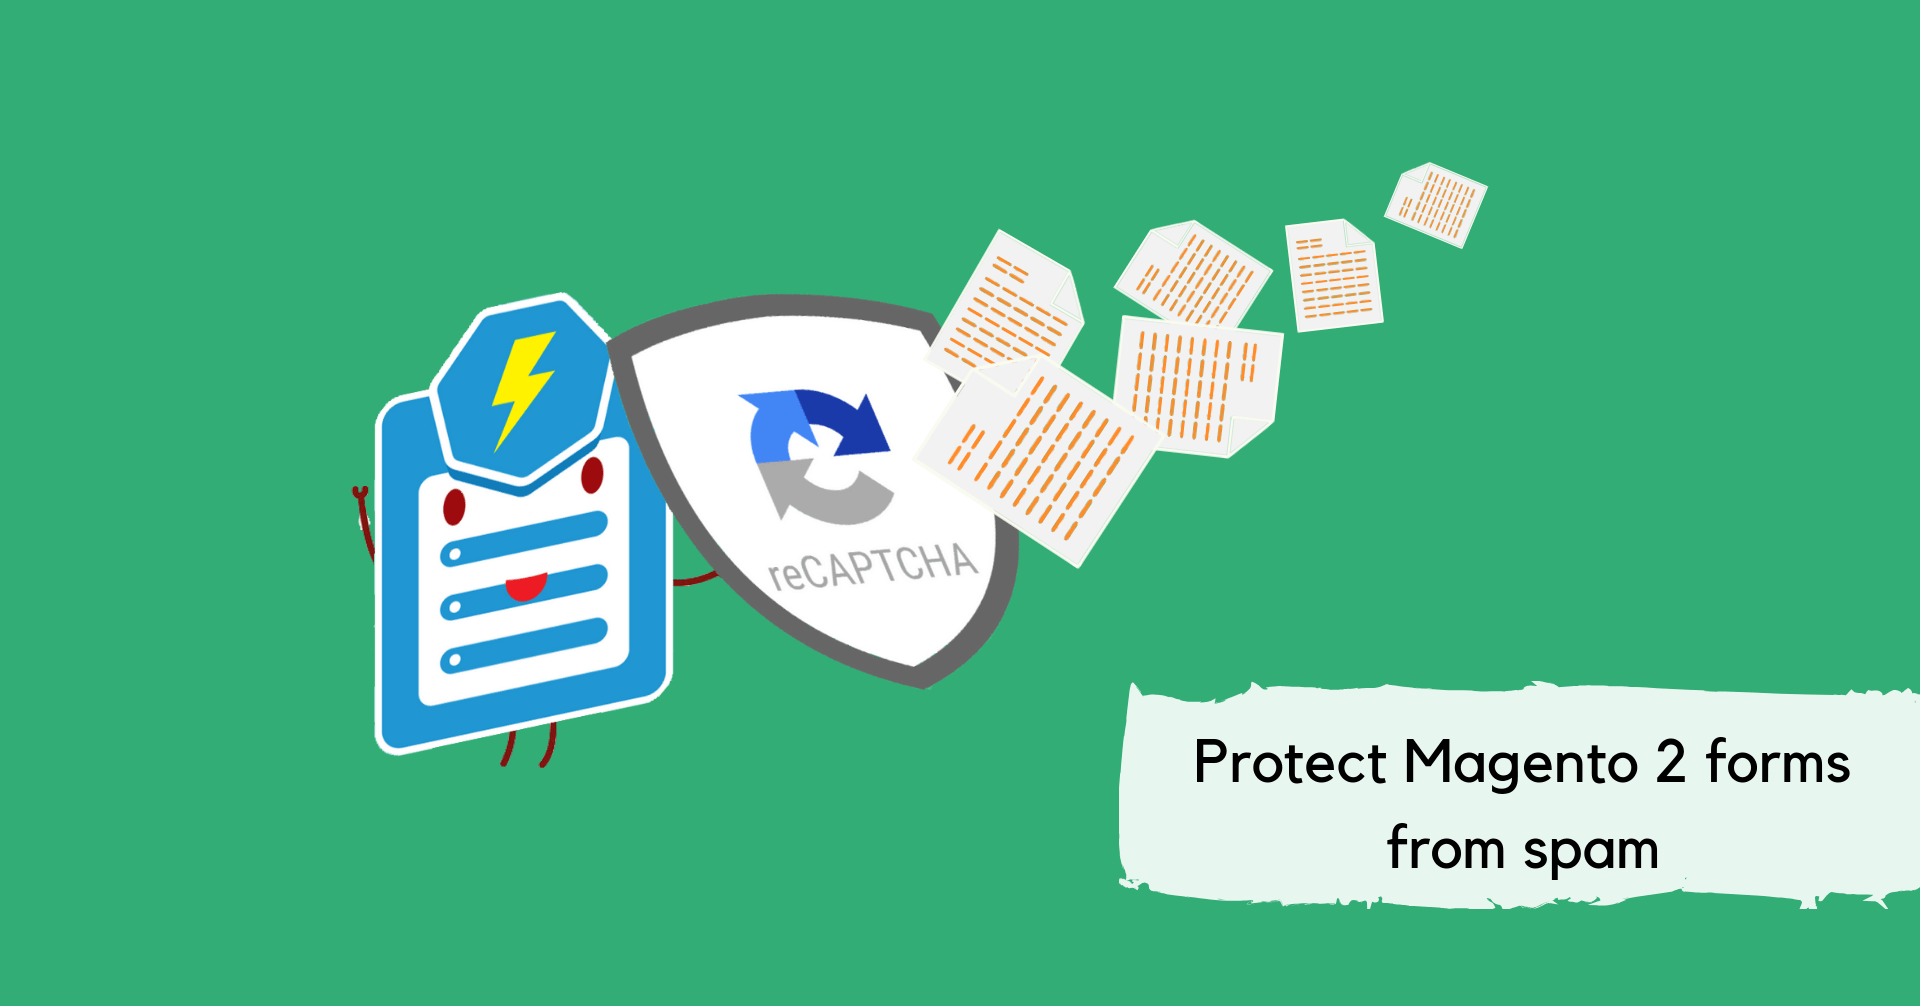 Protect Magento 2 forms from spams with Captcha